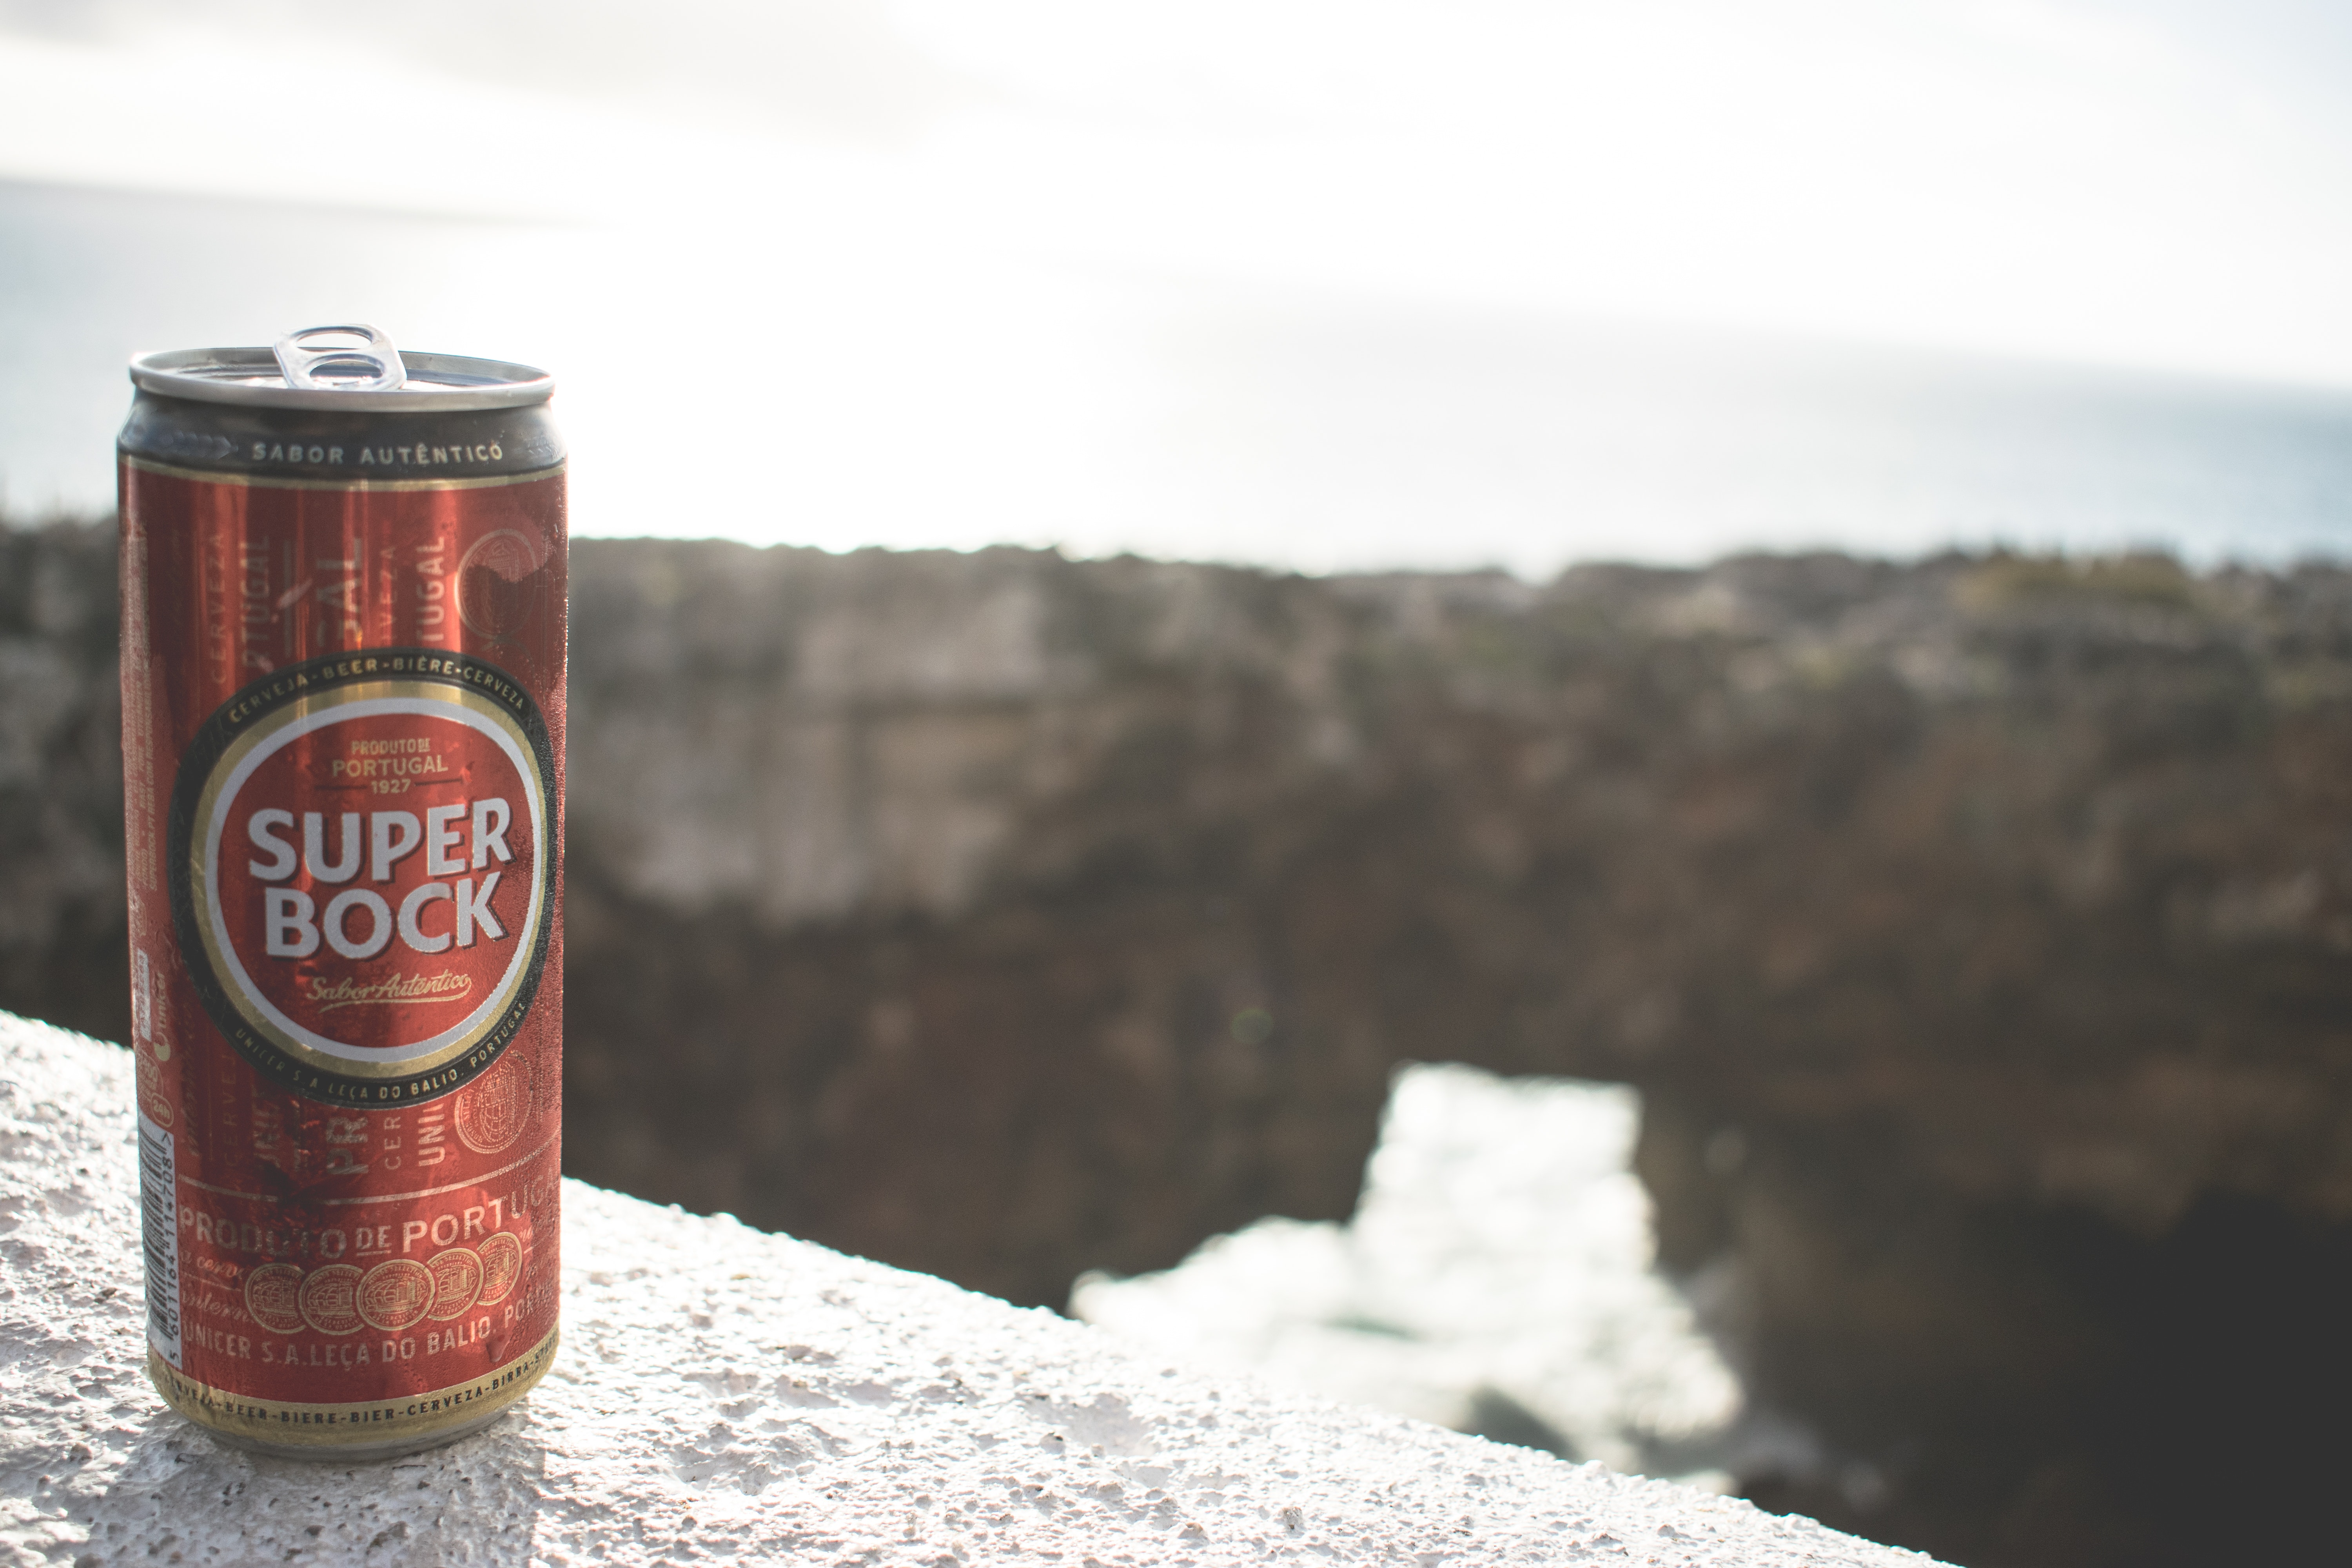 Tilt lens photography of super bock tin can